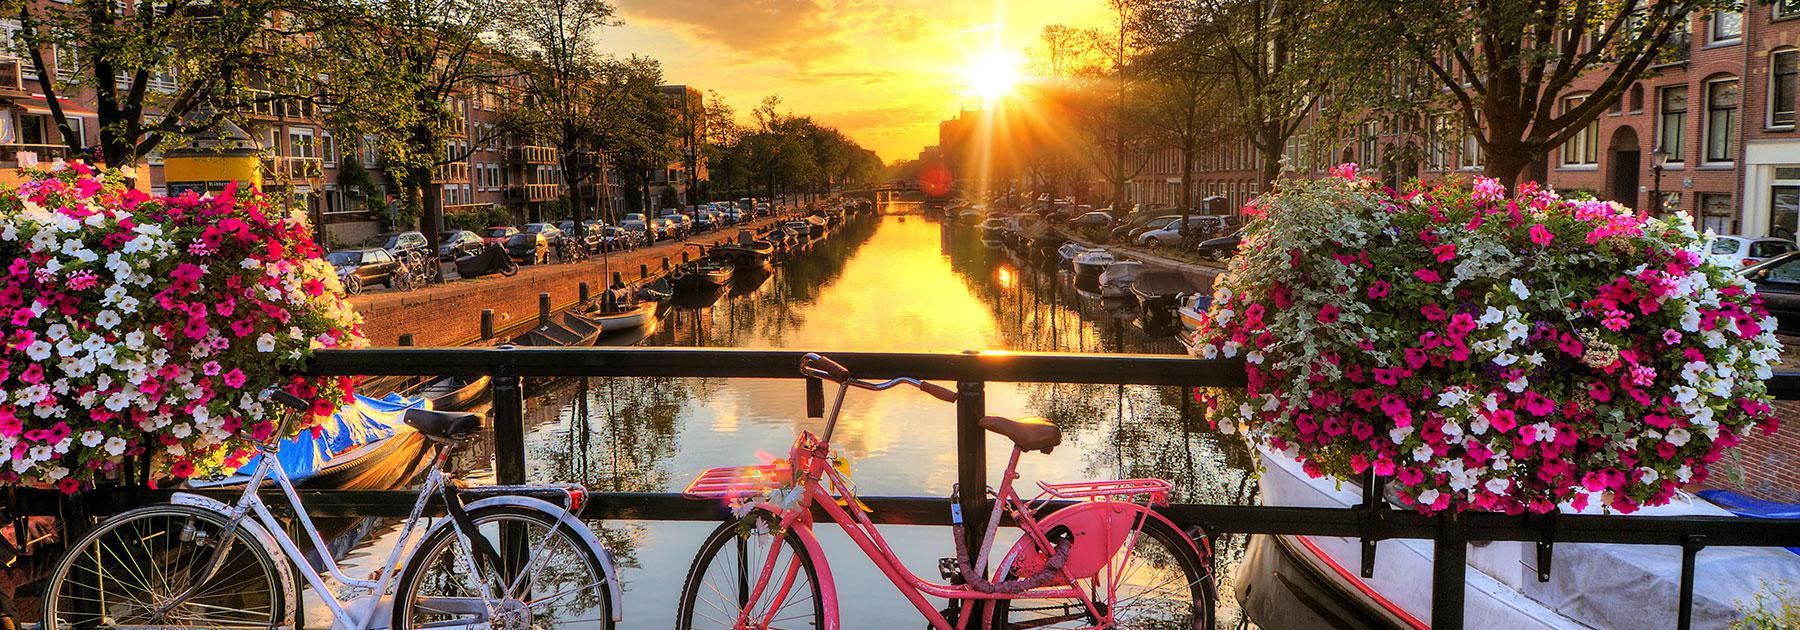 Vacation Travel Package Deals Amsterdam Vacation Packages | Amsterdam Trips With Airfare